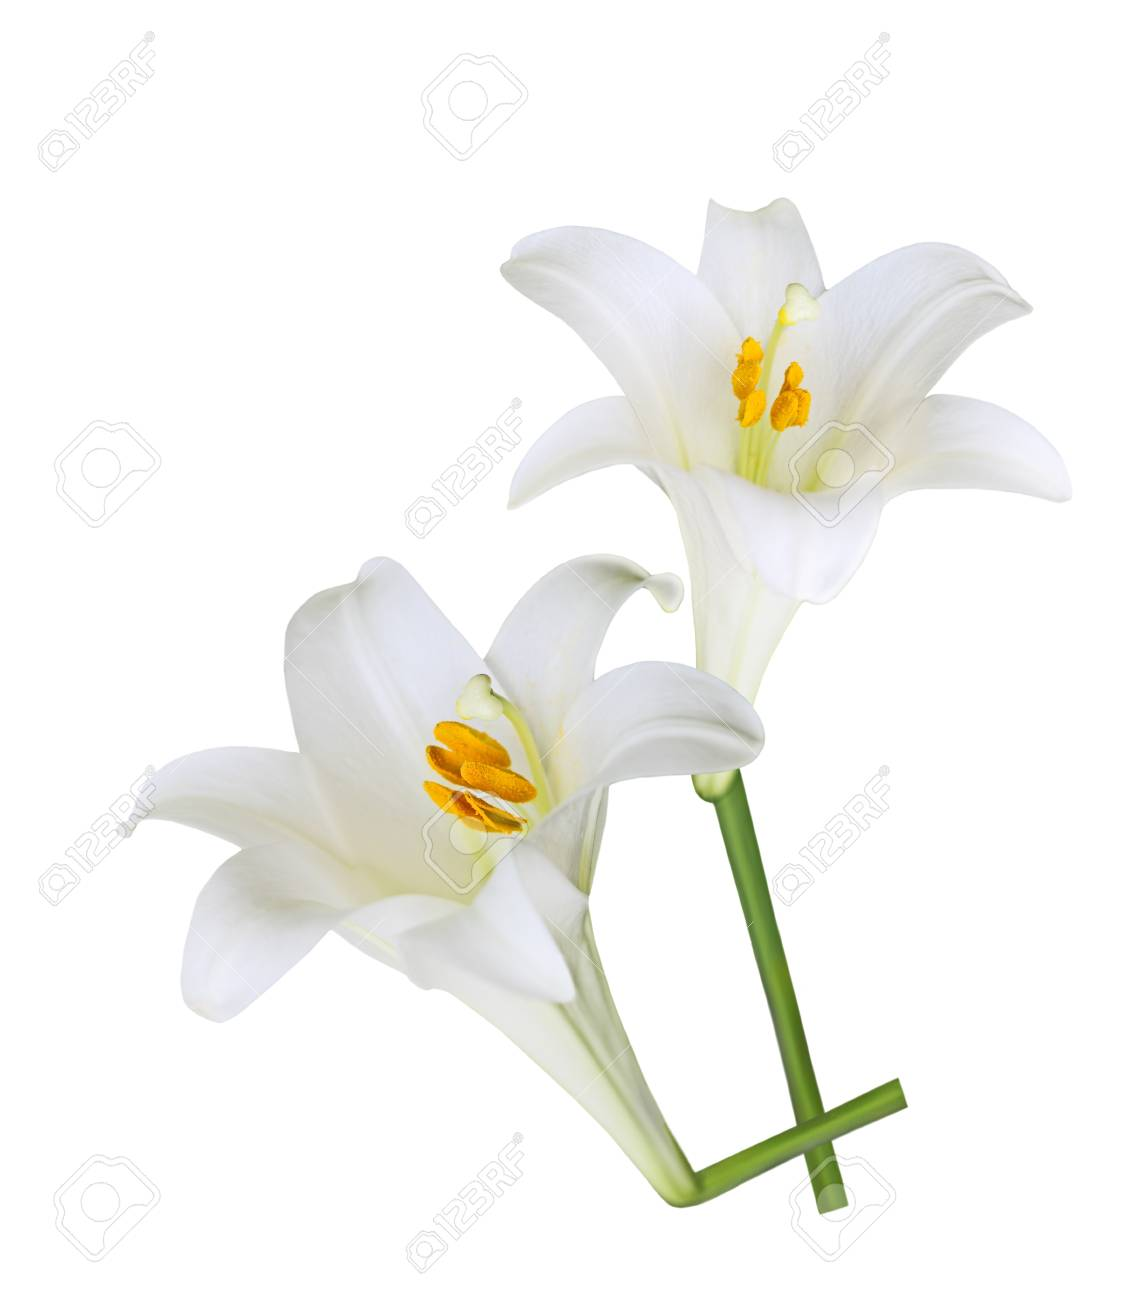 Fresh easter lily flowers isolated on white background stock photo fresh easter lily flowers isolated on white background stock photo 22155136 izmirmasajfo